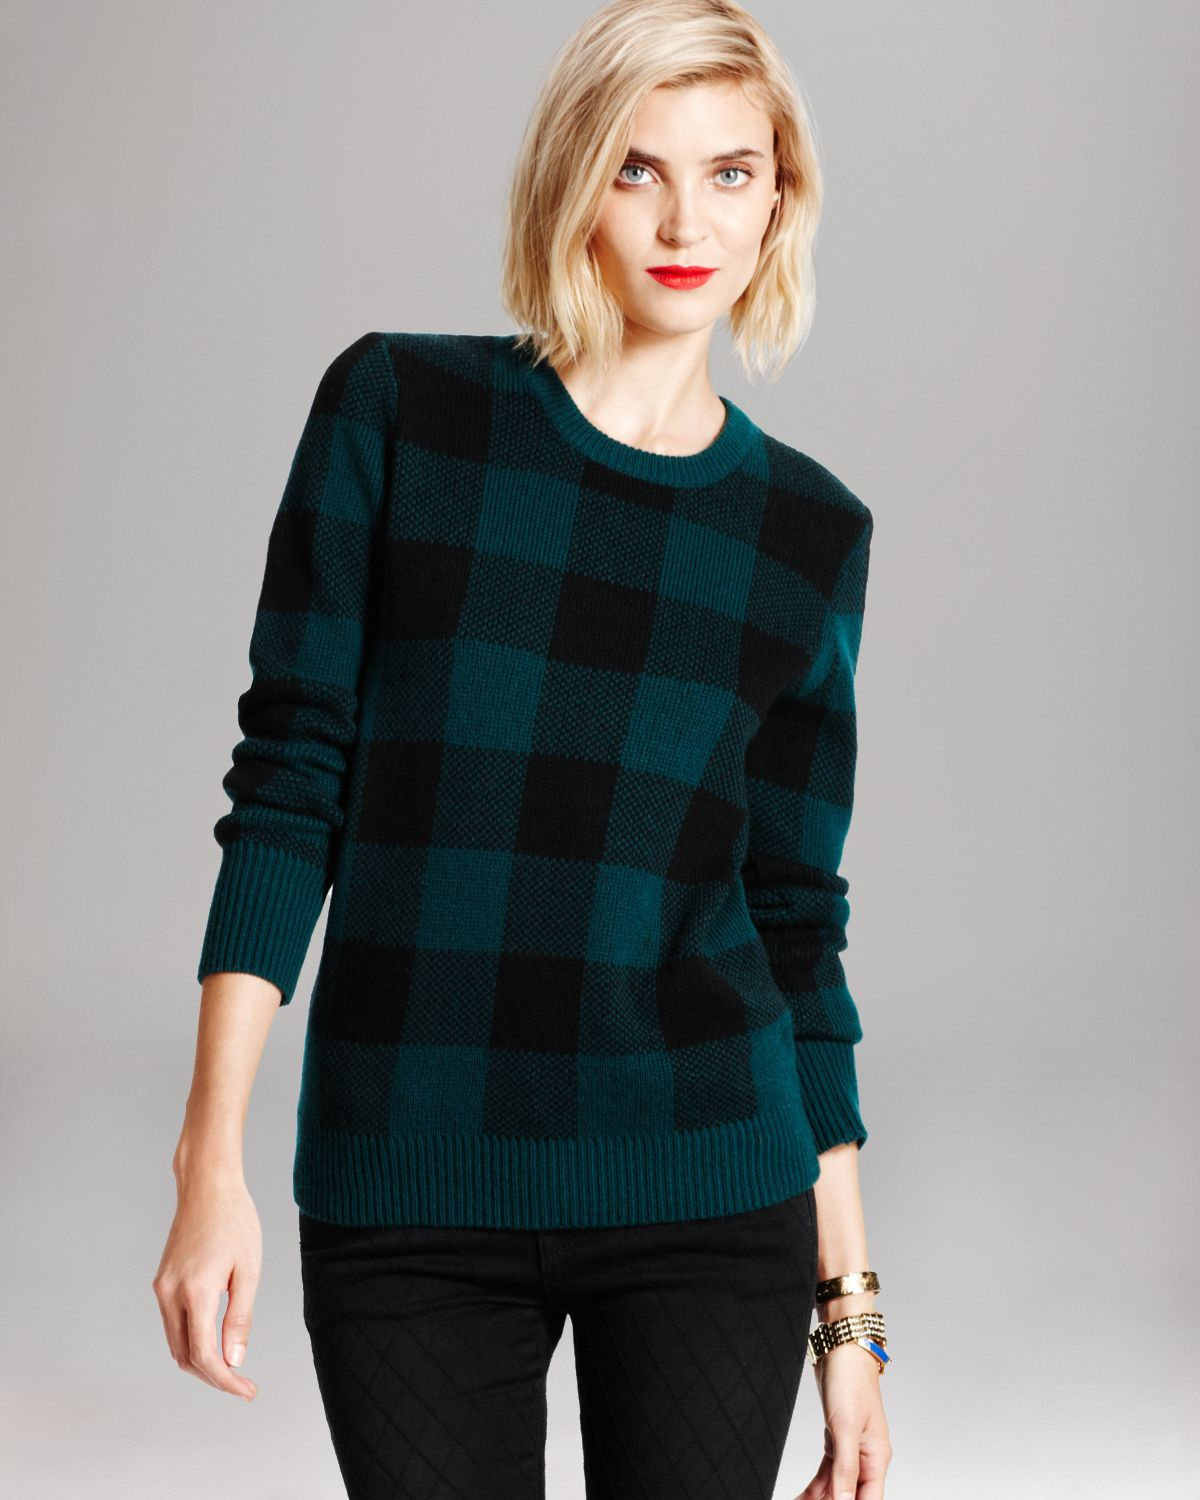 Equipment Sweater - Shane Plaid Crewneck | Bloomingdale's